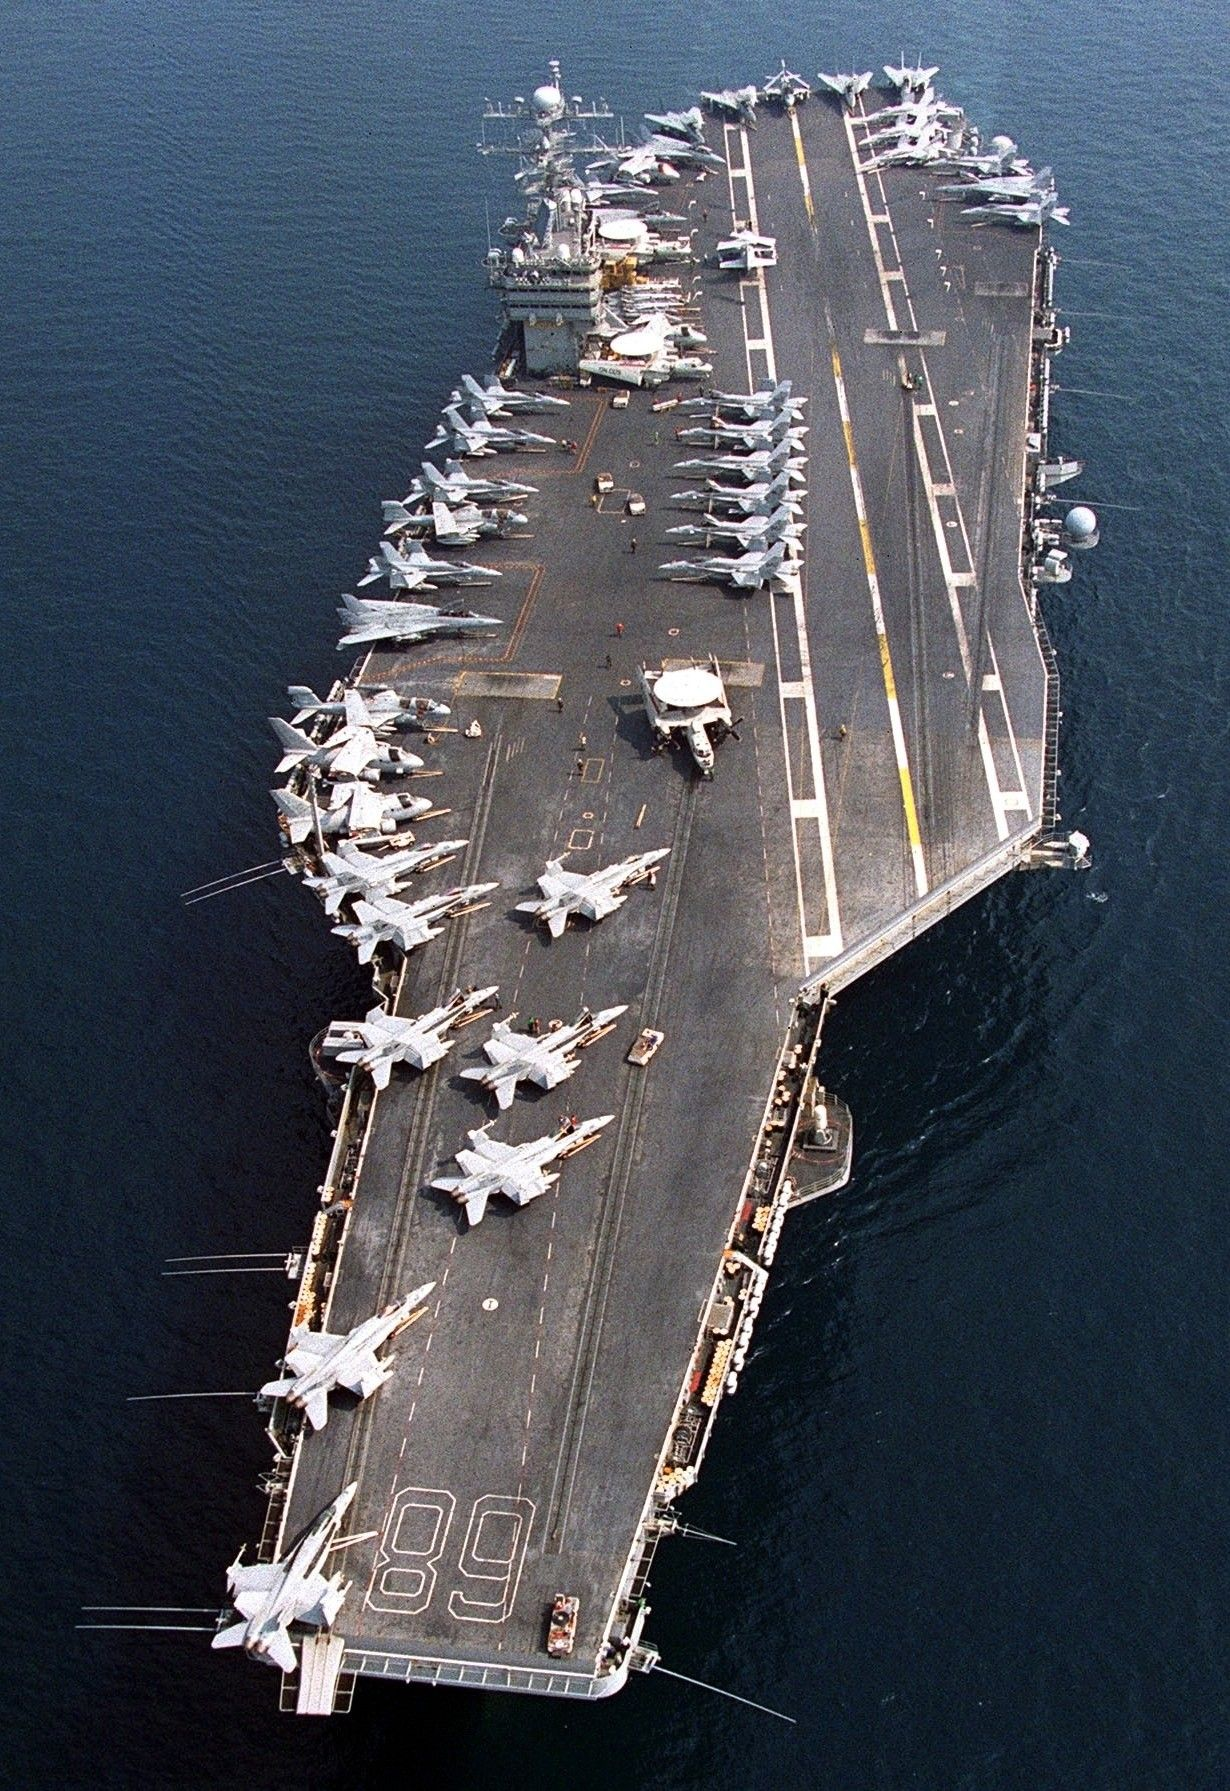 Cvn 68 Uss Nimitz Carrier Air Wing Cvw 9 Aircraft Carrier Uss Nimitz Military